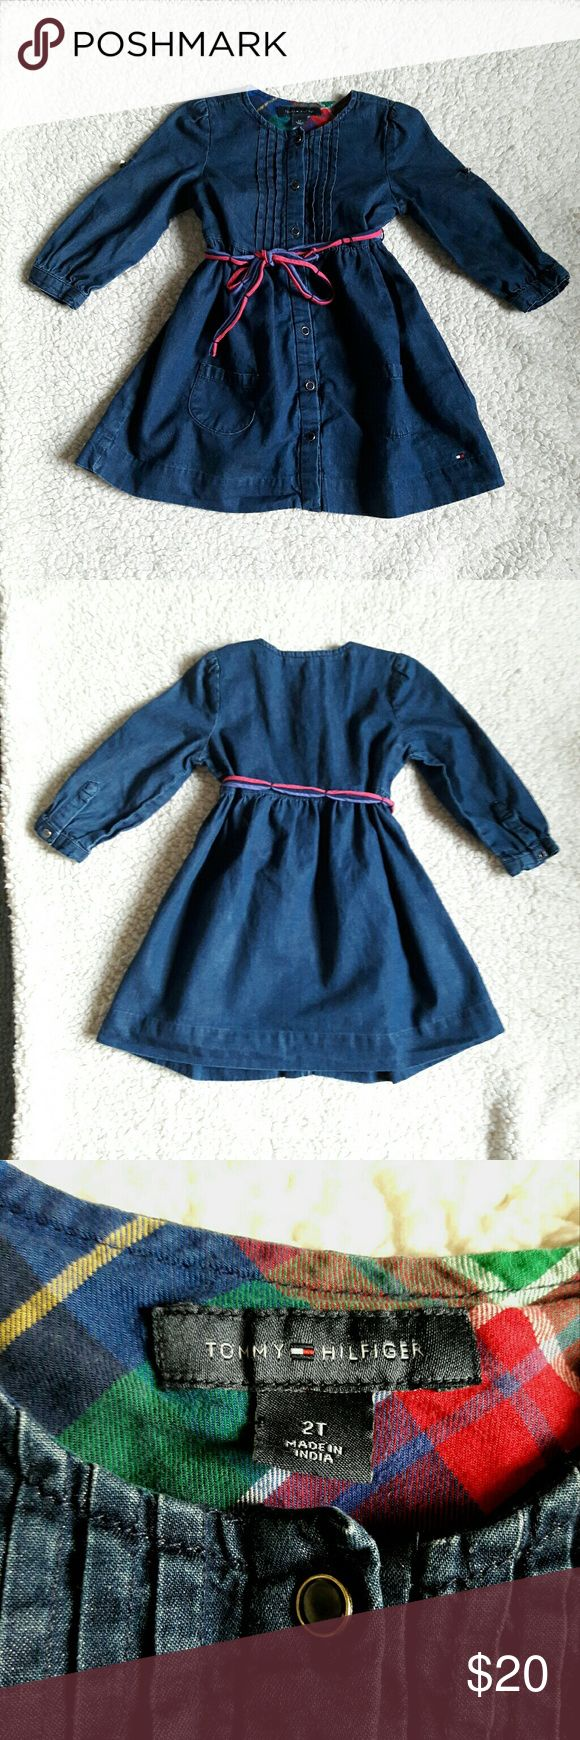 Tommy Hilfiger Girls Dress Adorable little girls denim dress.  Great condition--no stains, holes or tears. Tommy Hilfiger Dresses Casual